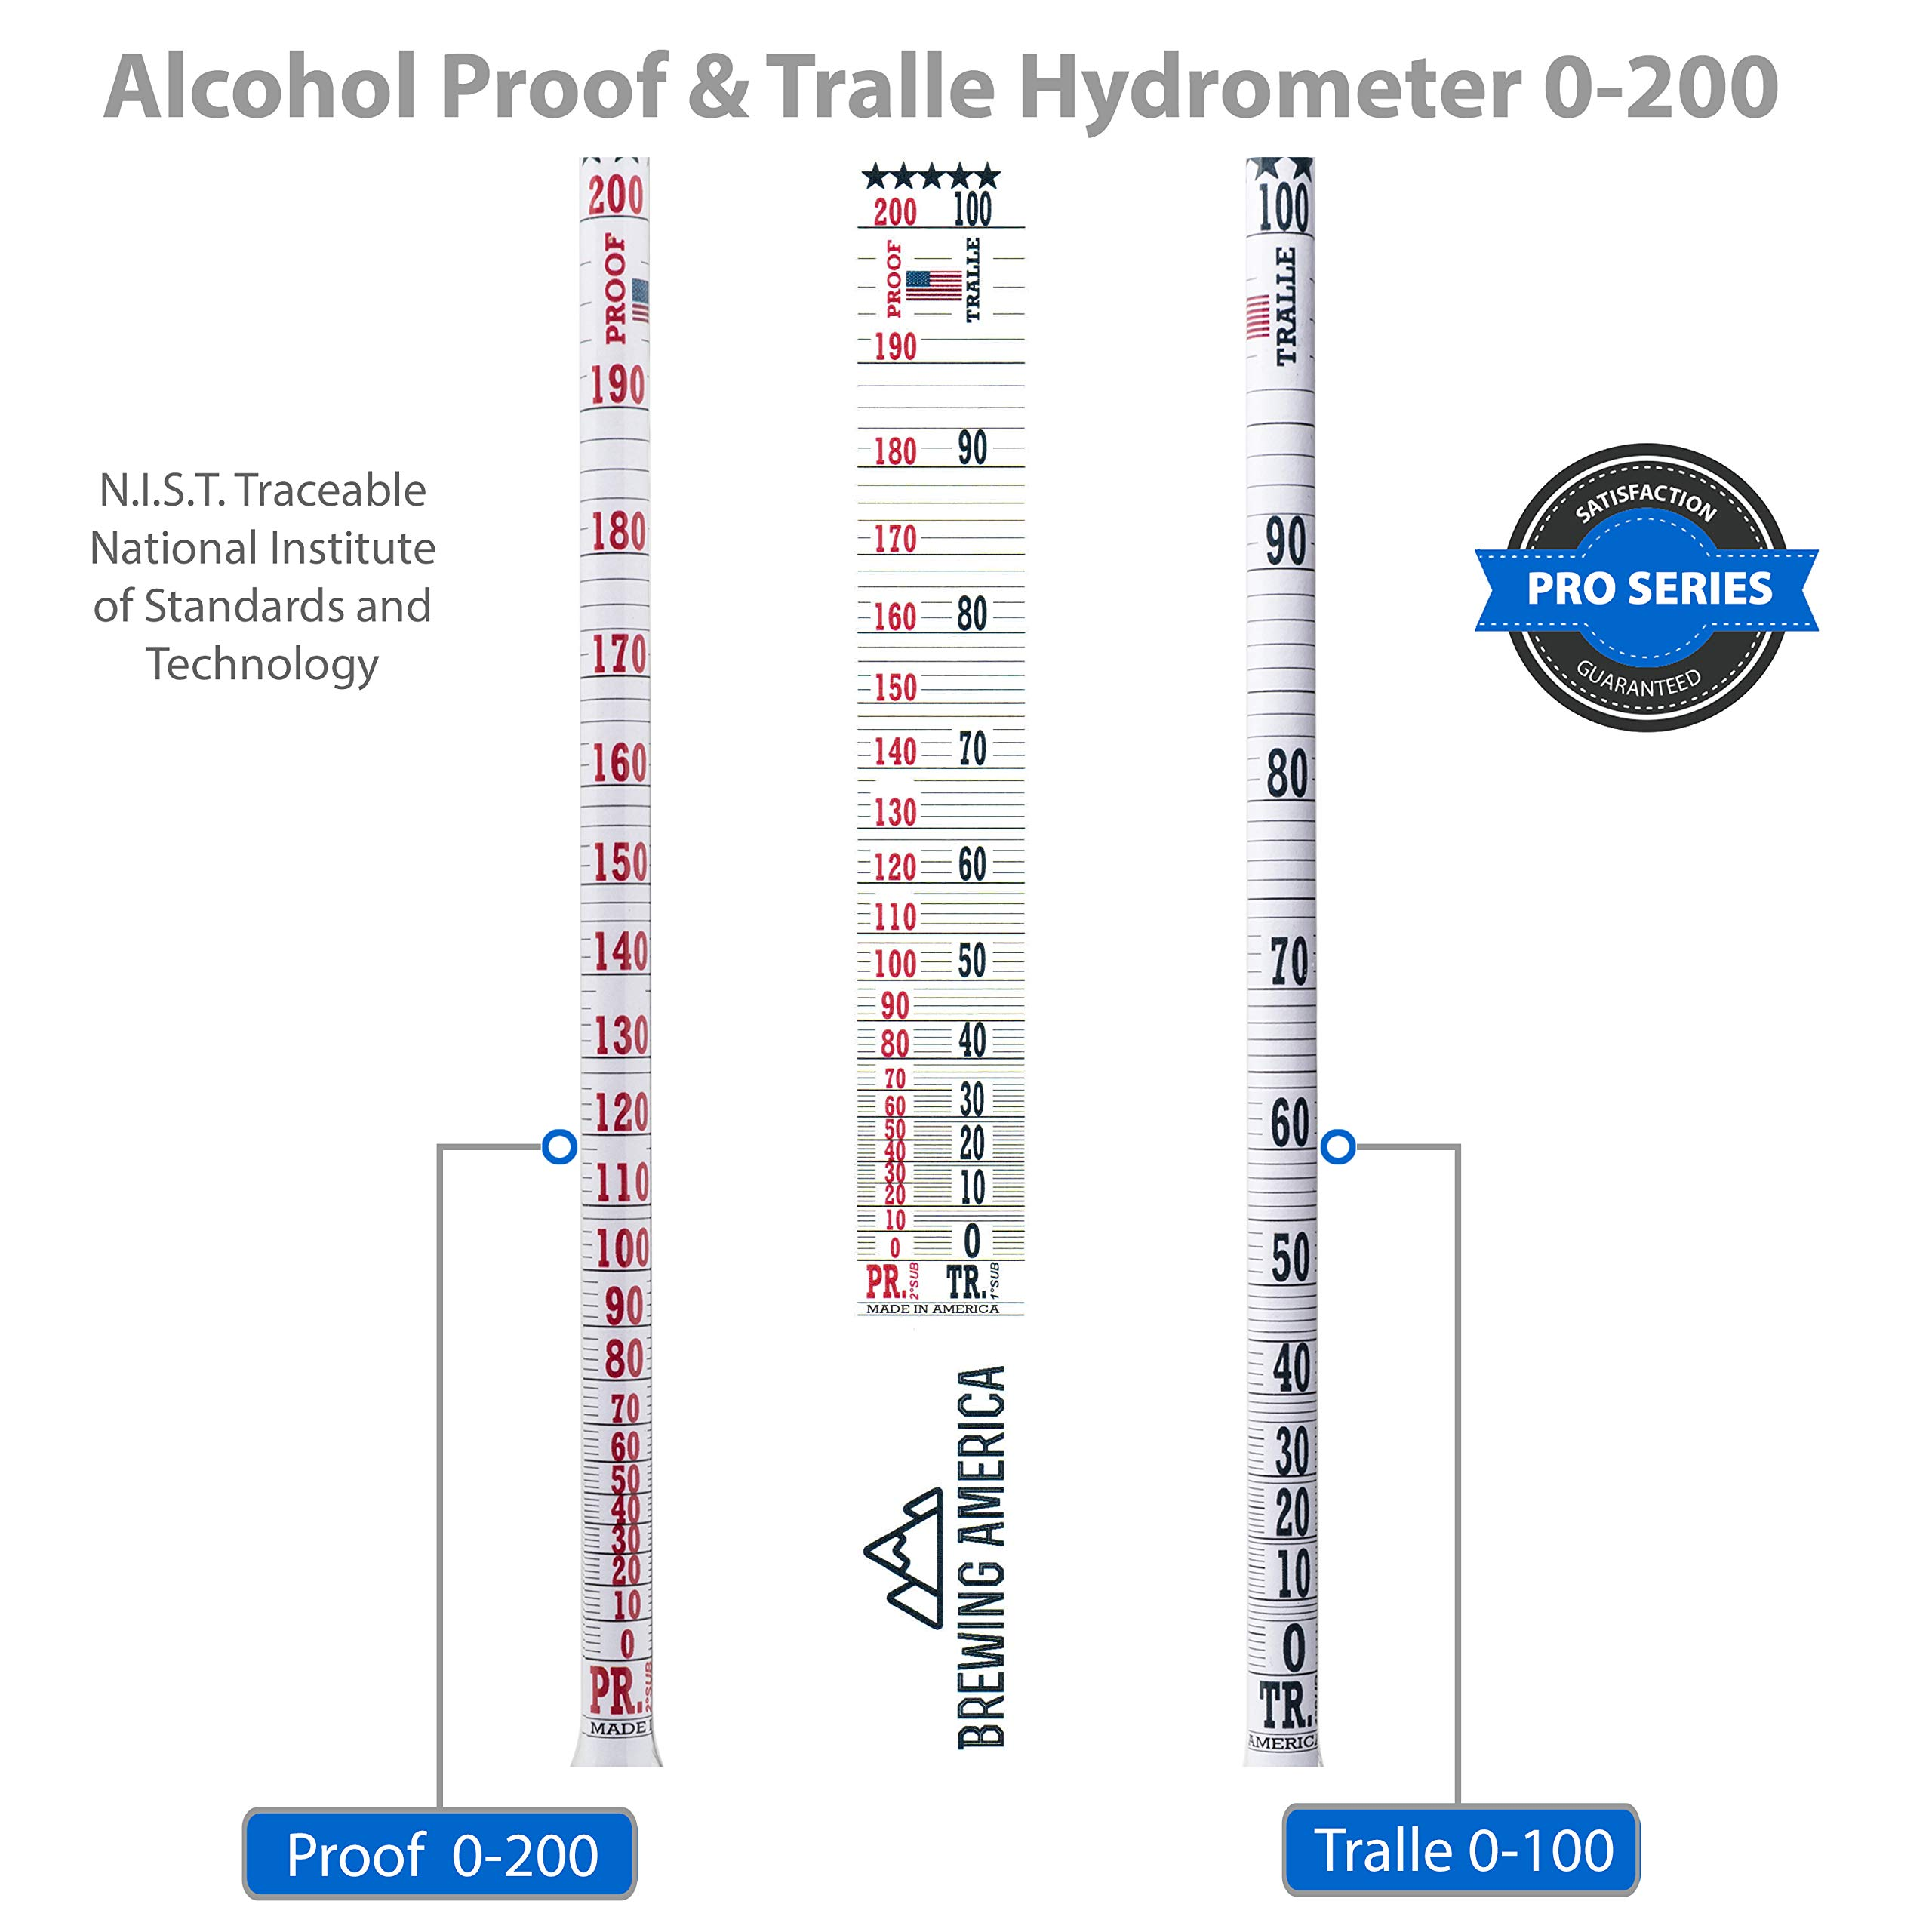 American-Made Alcohol Hydrometer Tester 0-200 Proof & Tralle Pro Series Traceable - Distilling Moonshine Alcoholmeter by Brewing America (Image #3)